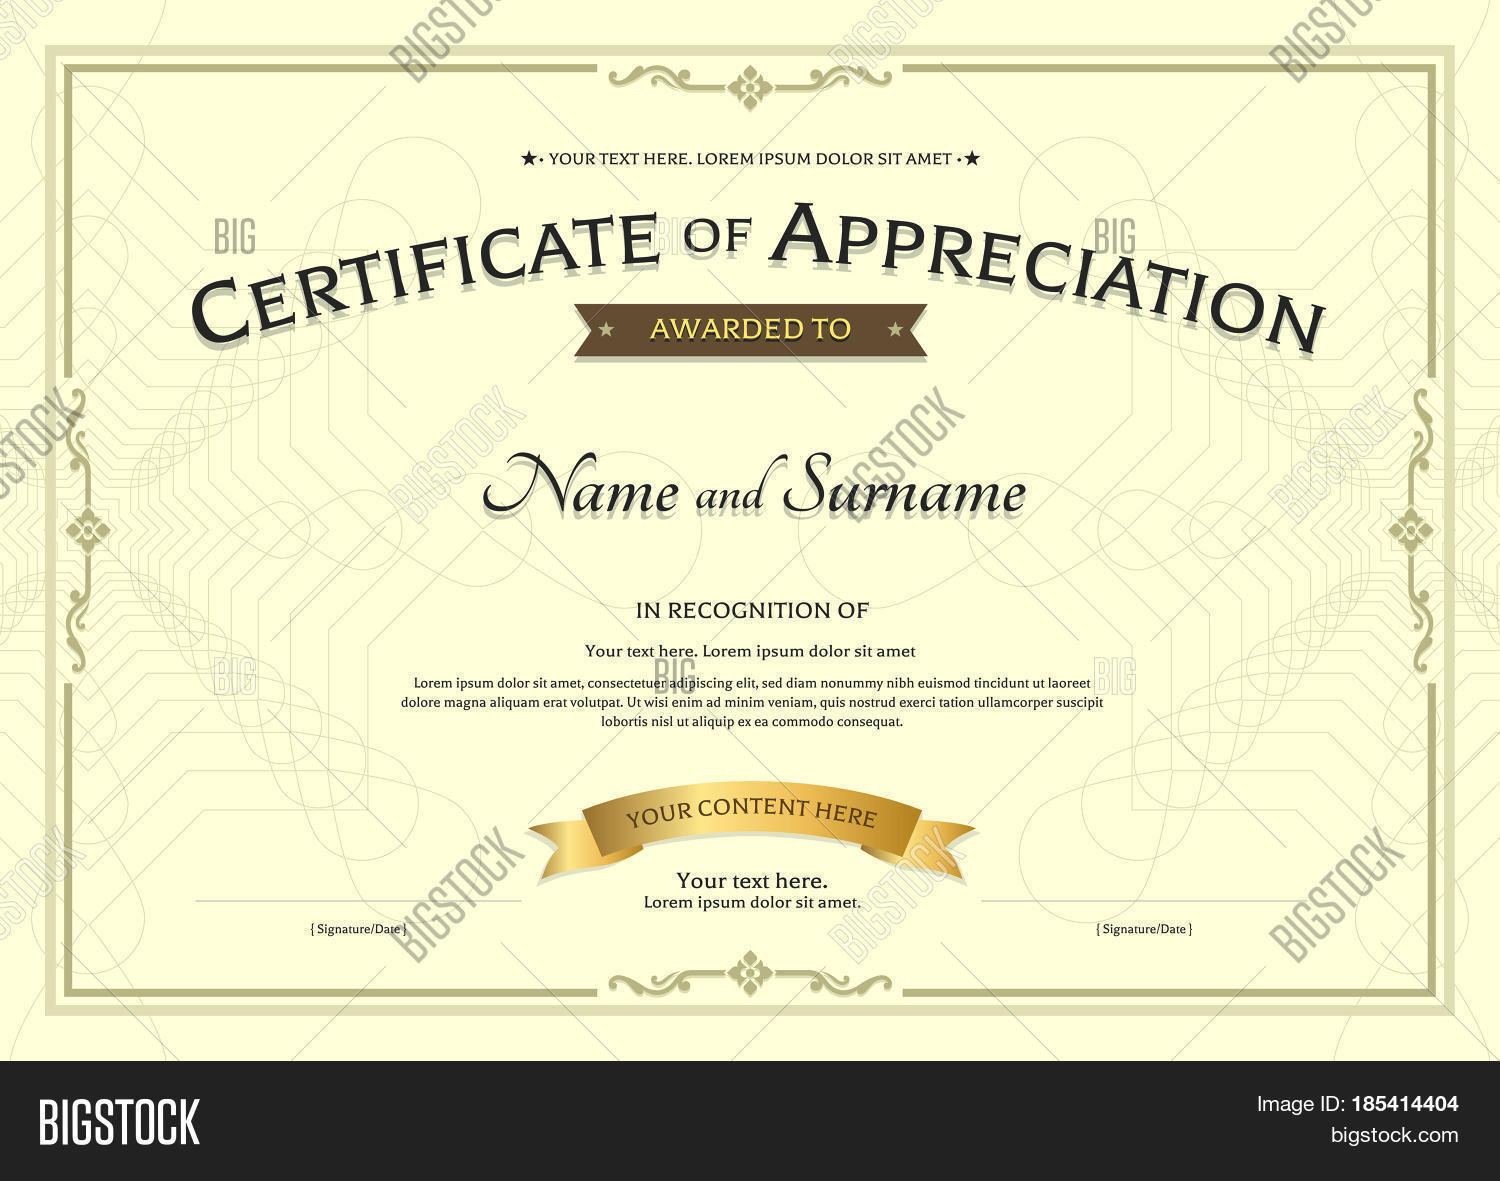 Certificate appreciation template vector photo bigstock certificate of appreciation template with award ribbon on abstract guilloche background with vintage border style yadclub Images